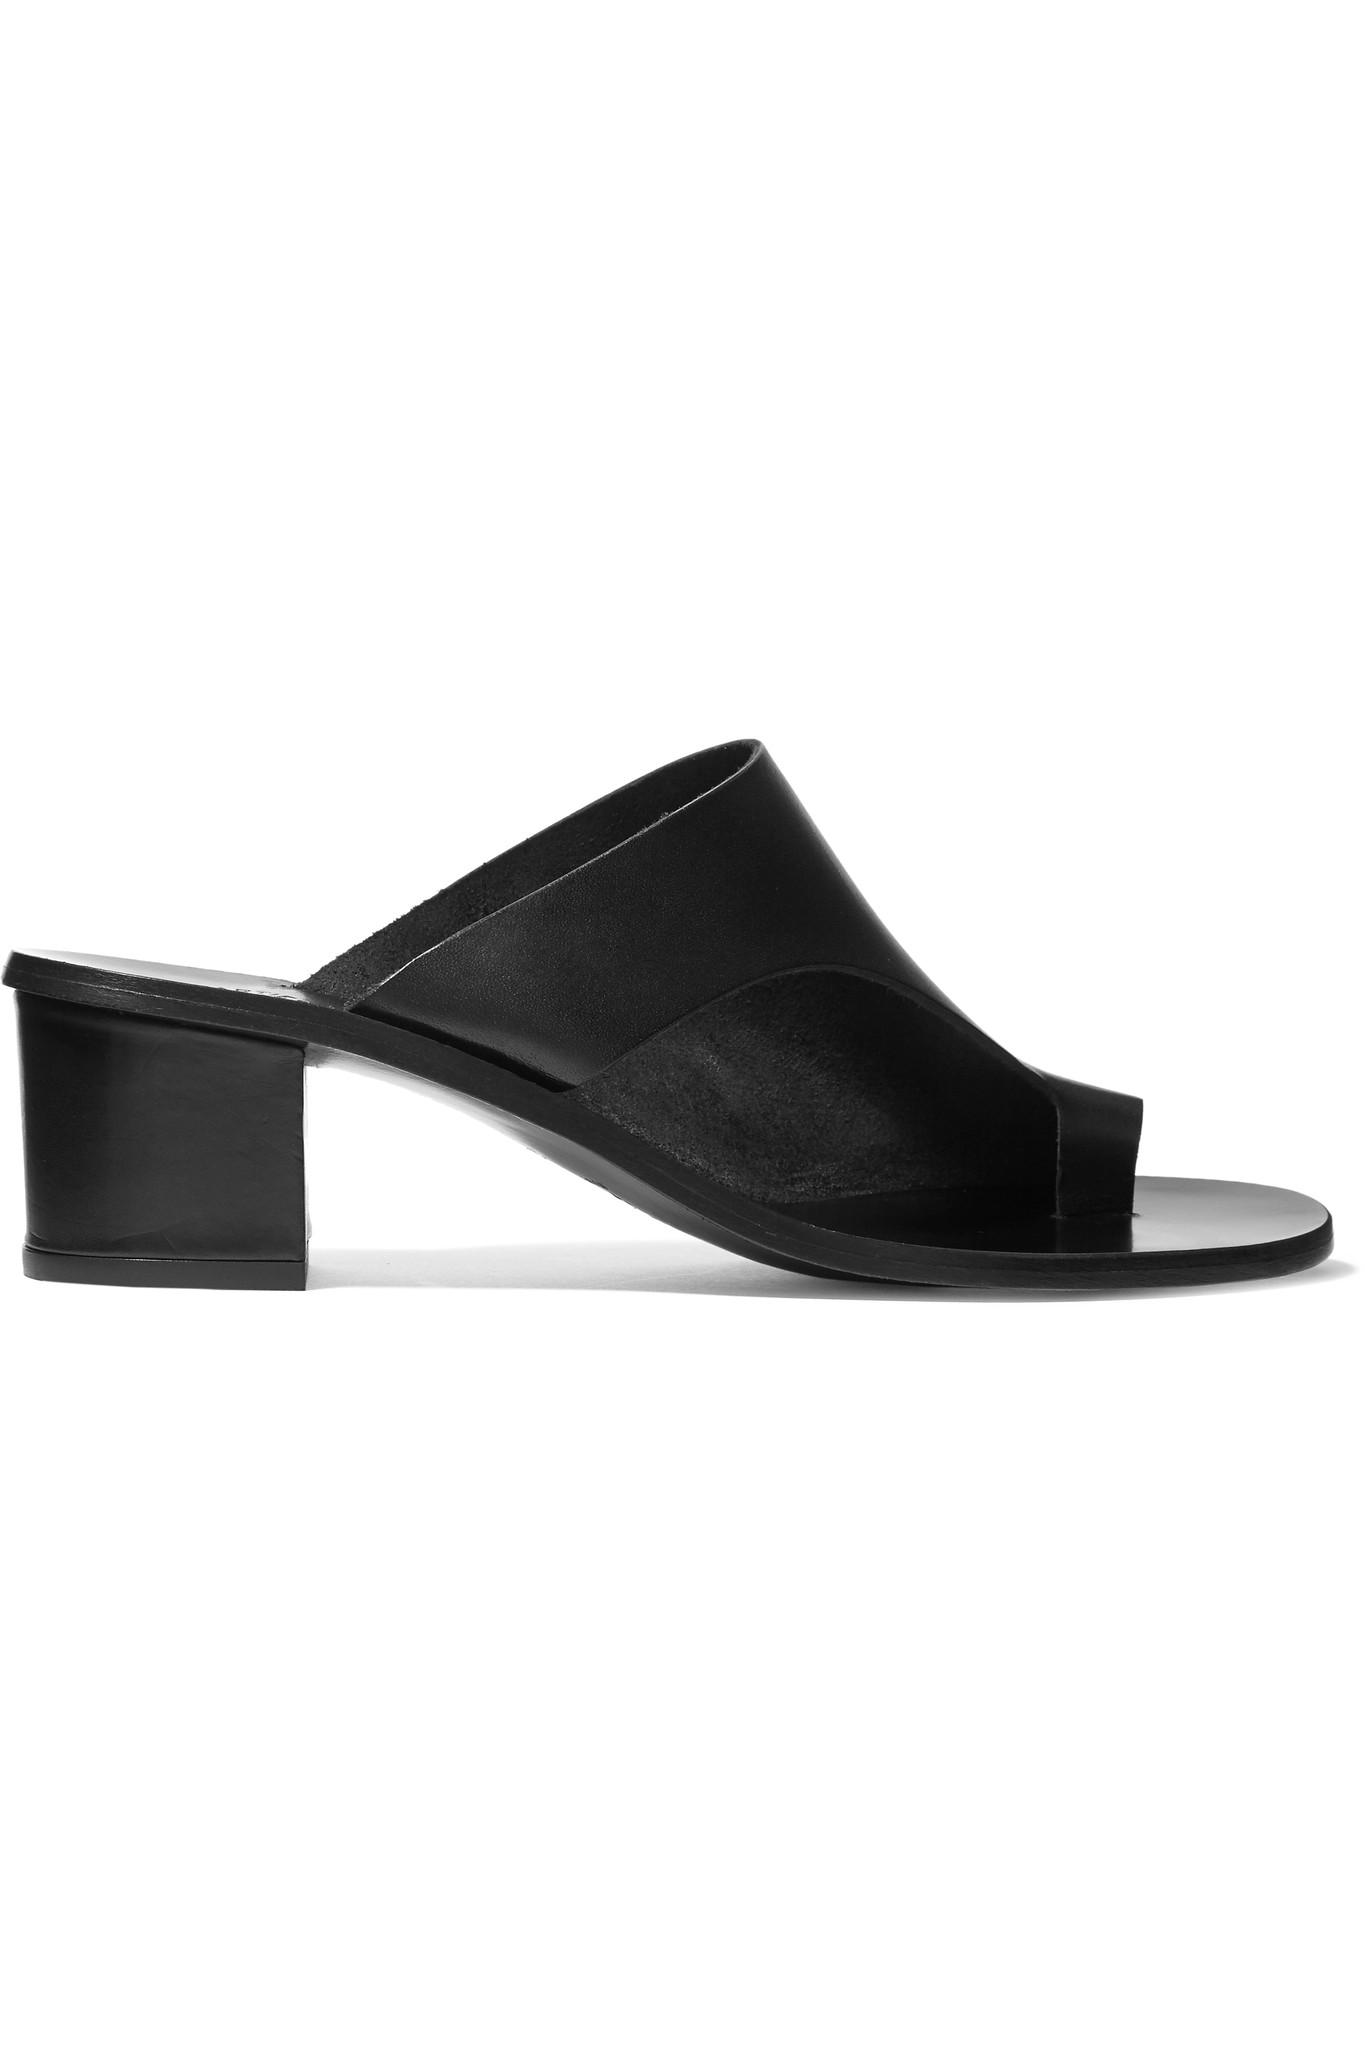 Atp atelier Cyla Cutout Leather Sandals in Black